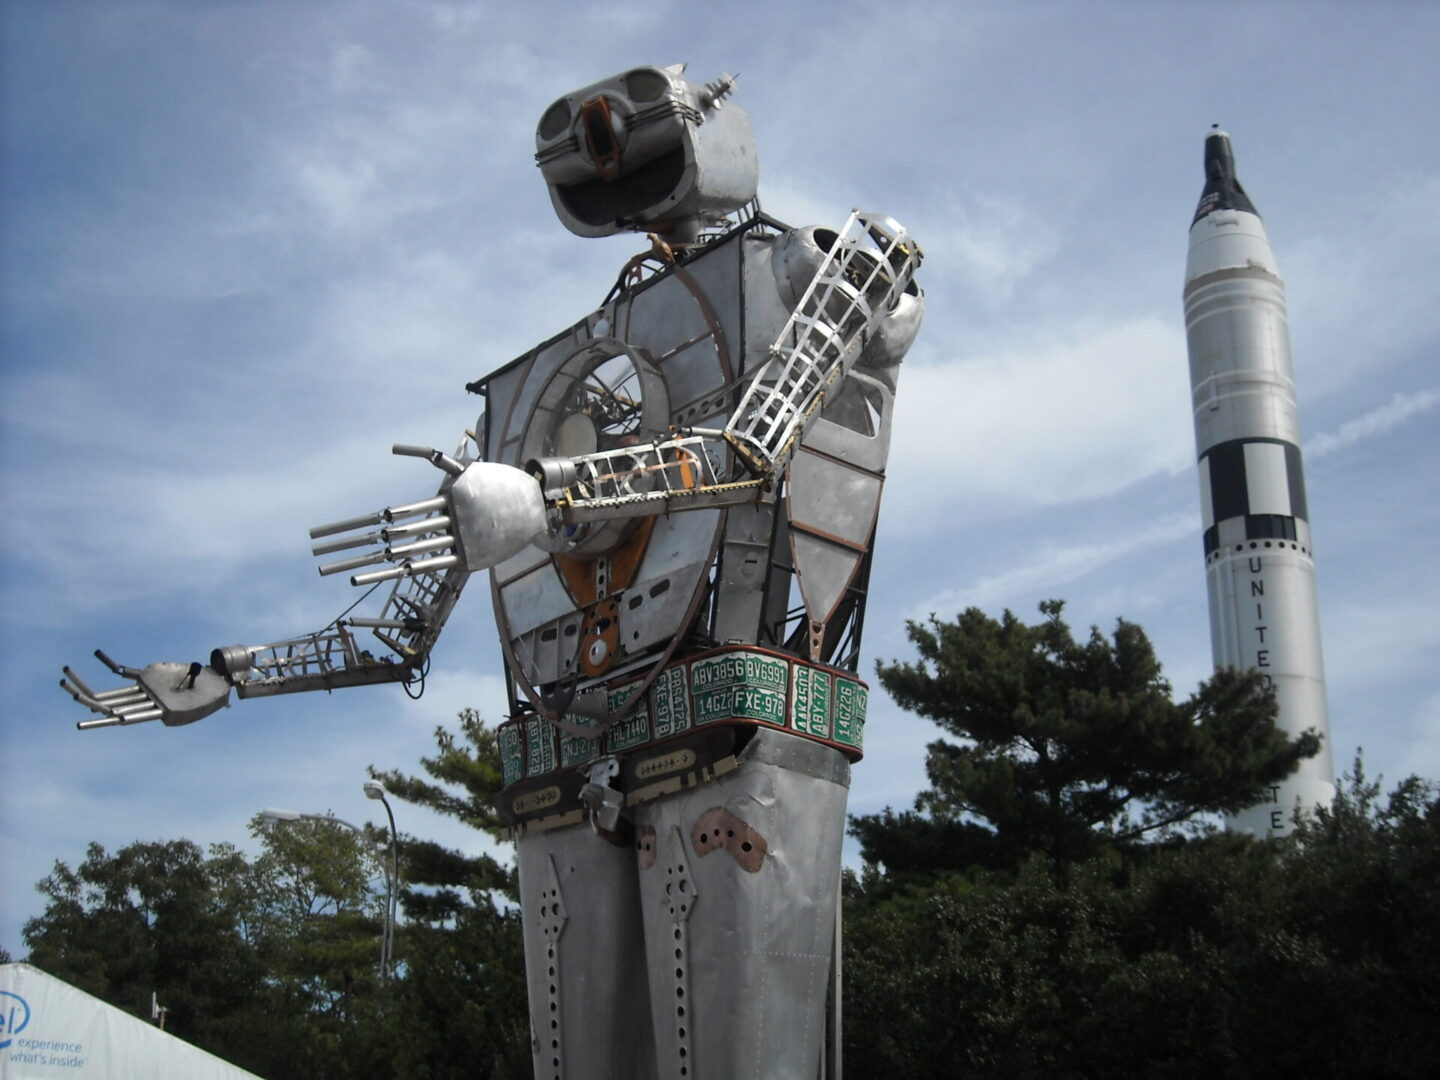 A giant robot greets visitors at The Maker Faire, where technology, art, and DIY culture intersect.